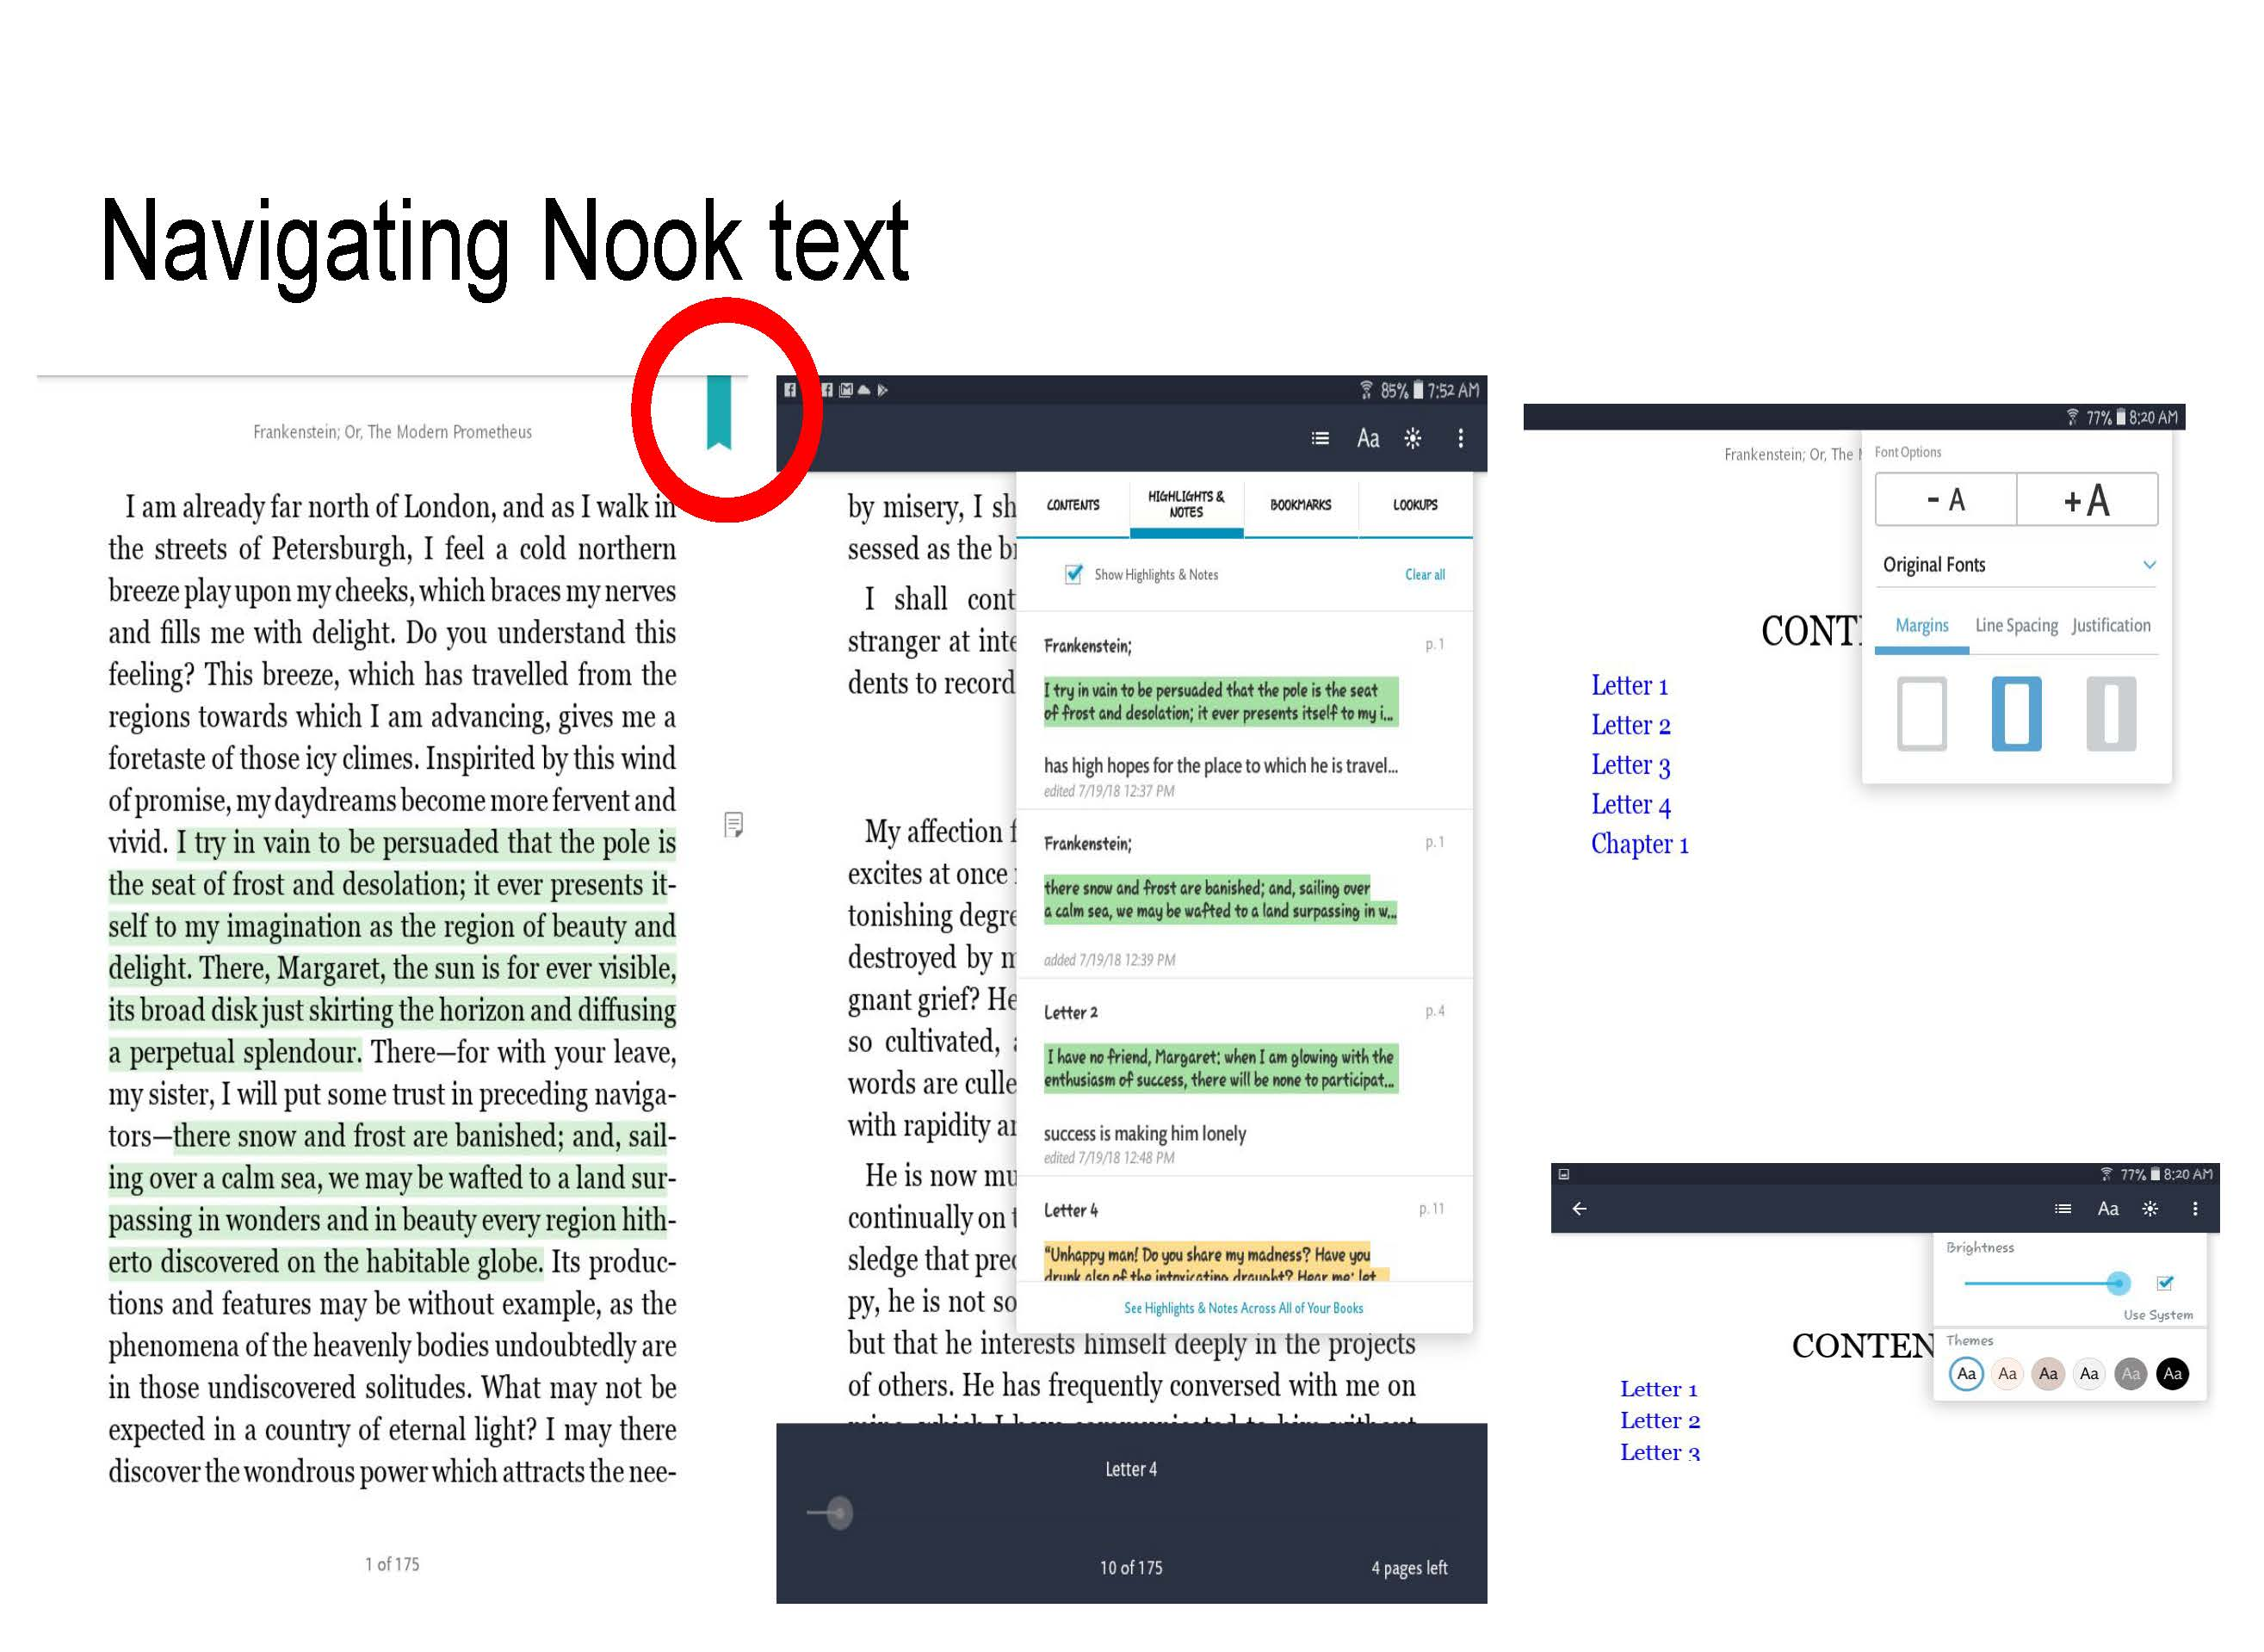 Nook lets you control font size, brightness, and view notes, contents and bookmarks